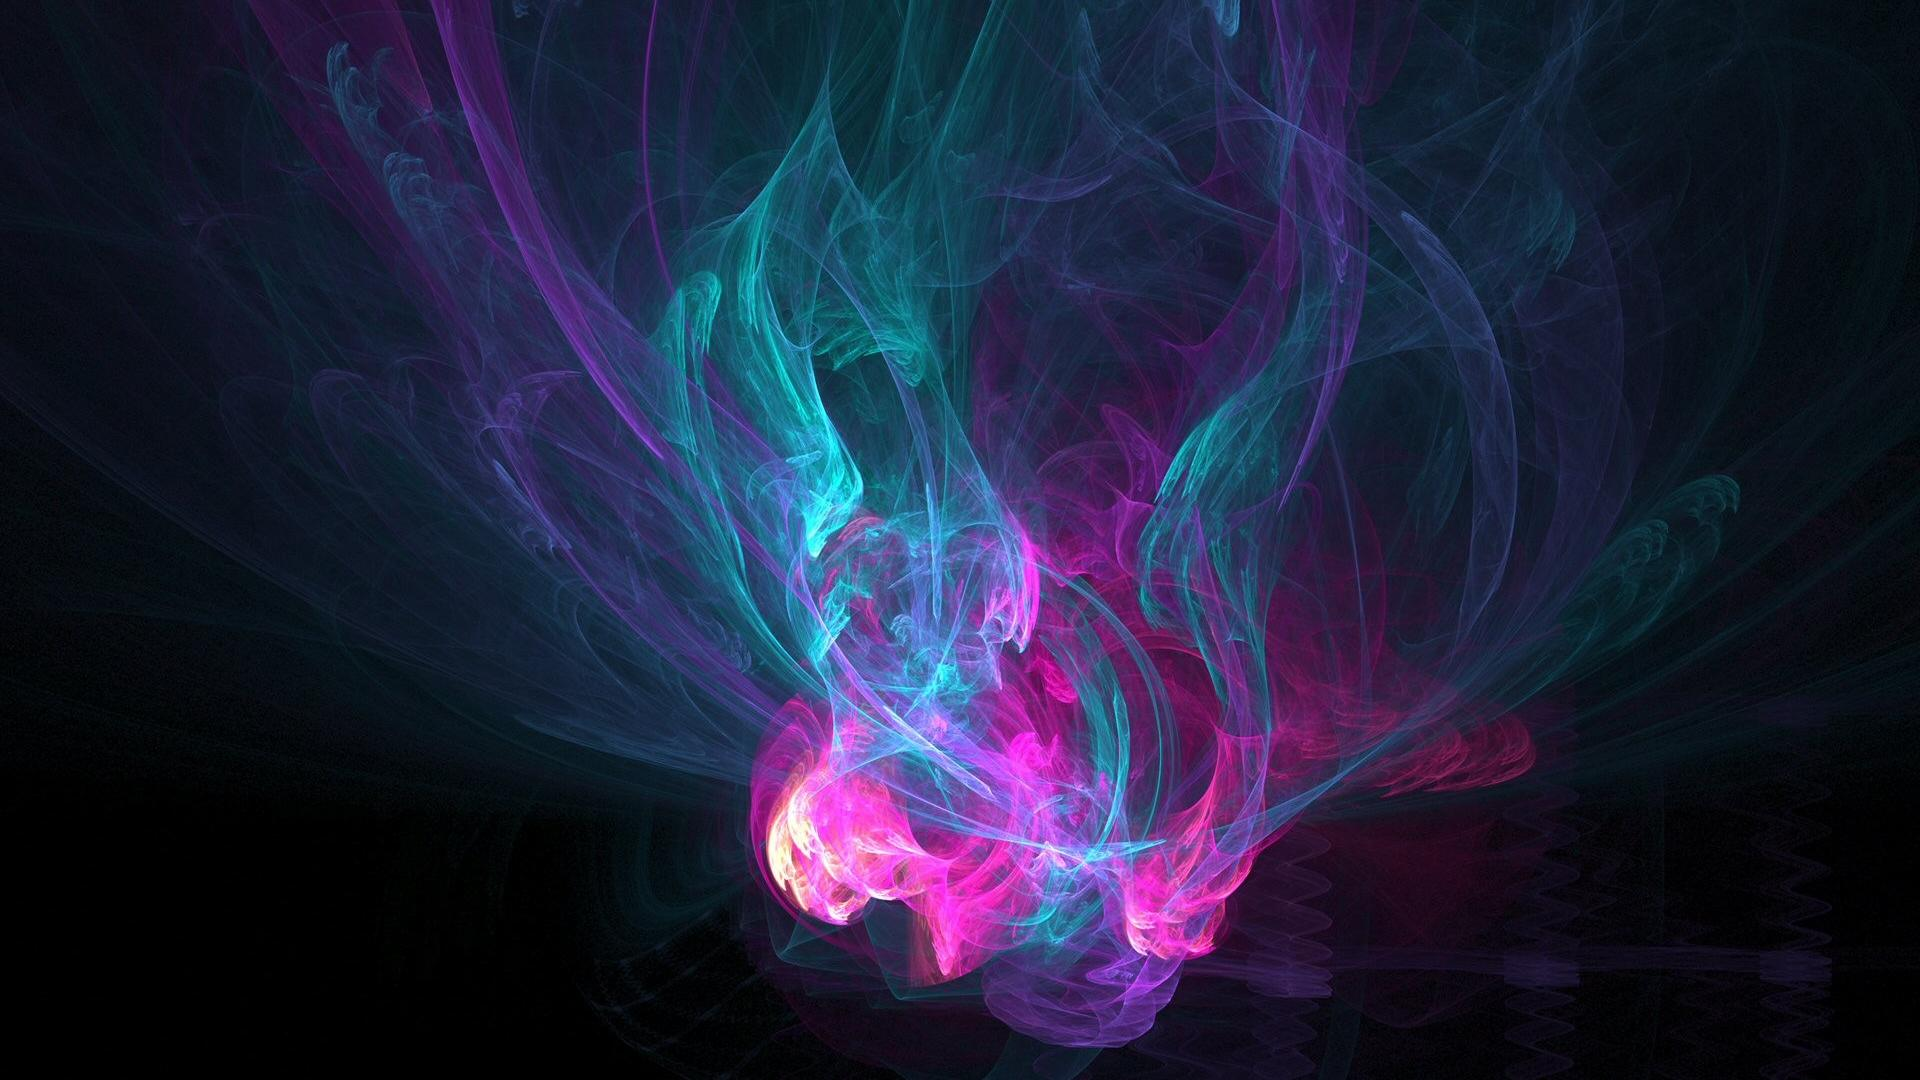 1920x1080 Colorful 3d work photography wide wallpapers1280x800 1920x1080